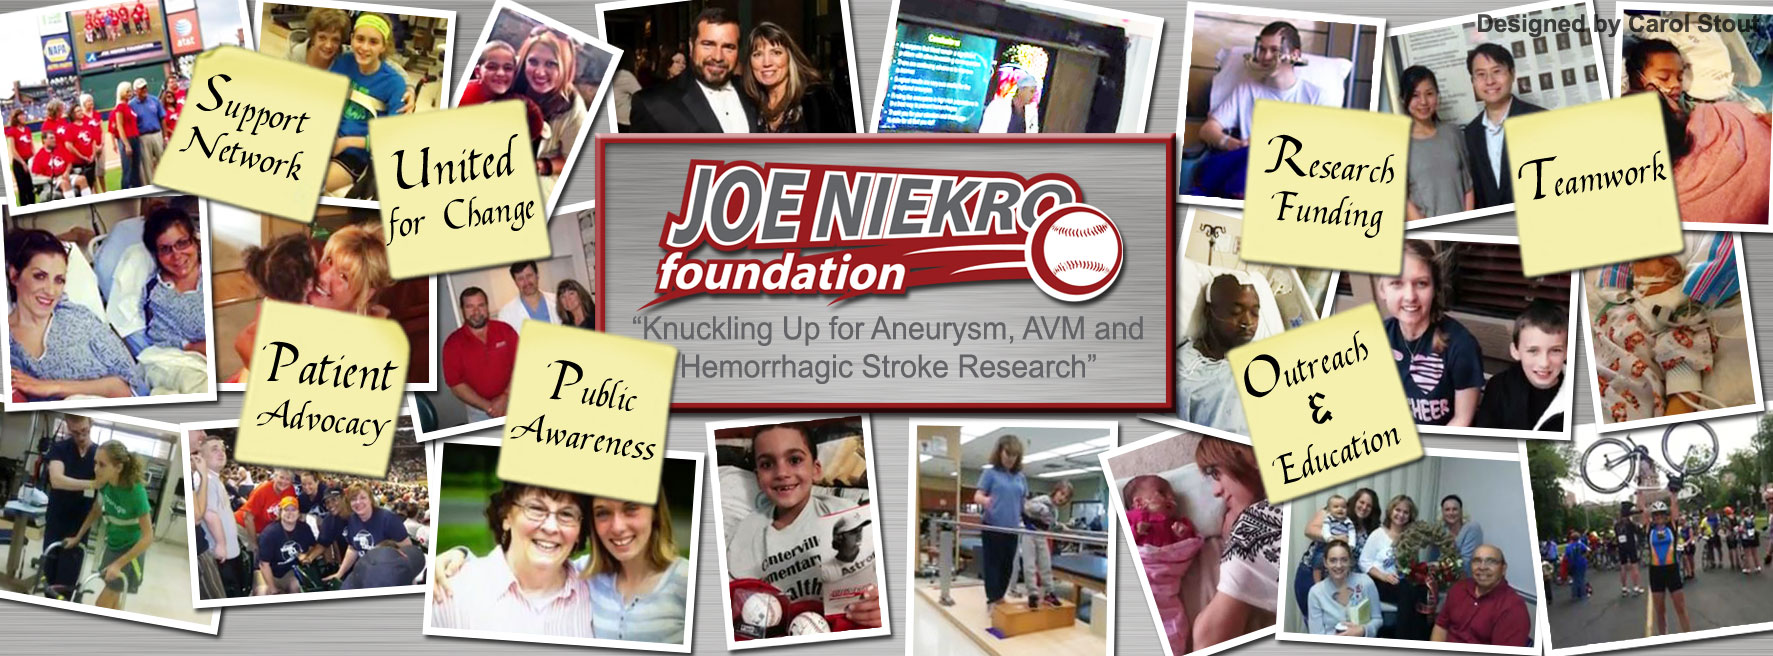 http://www.joeniekrofoundation.com/home-billboards/2631/attachment/survivor-banner-high-res3/